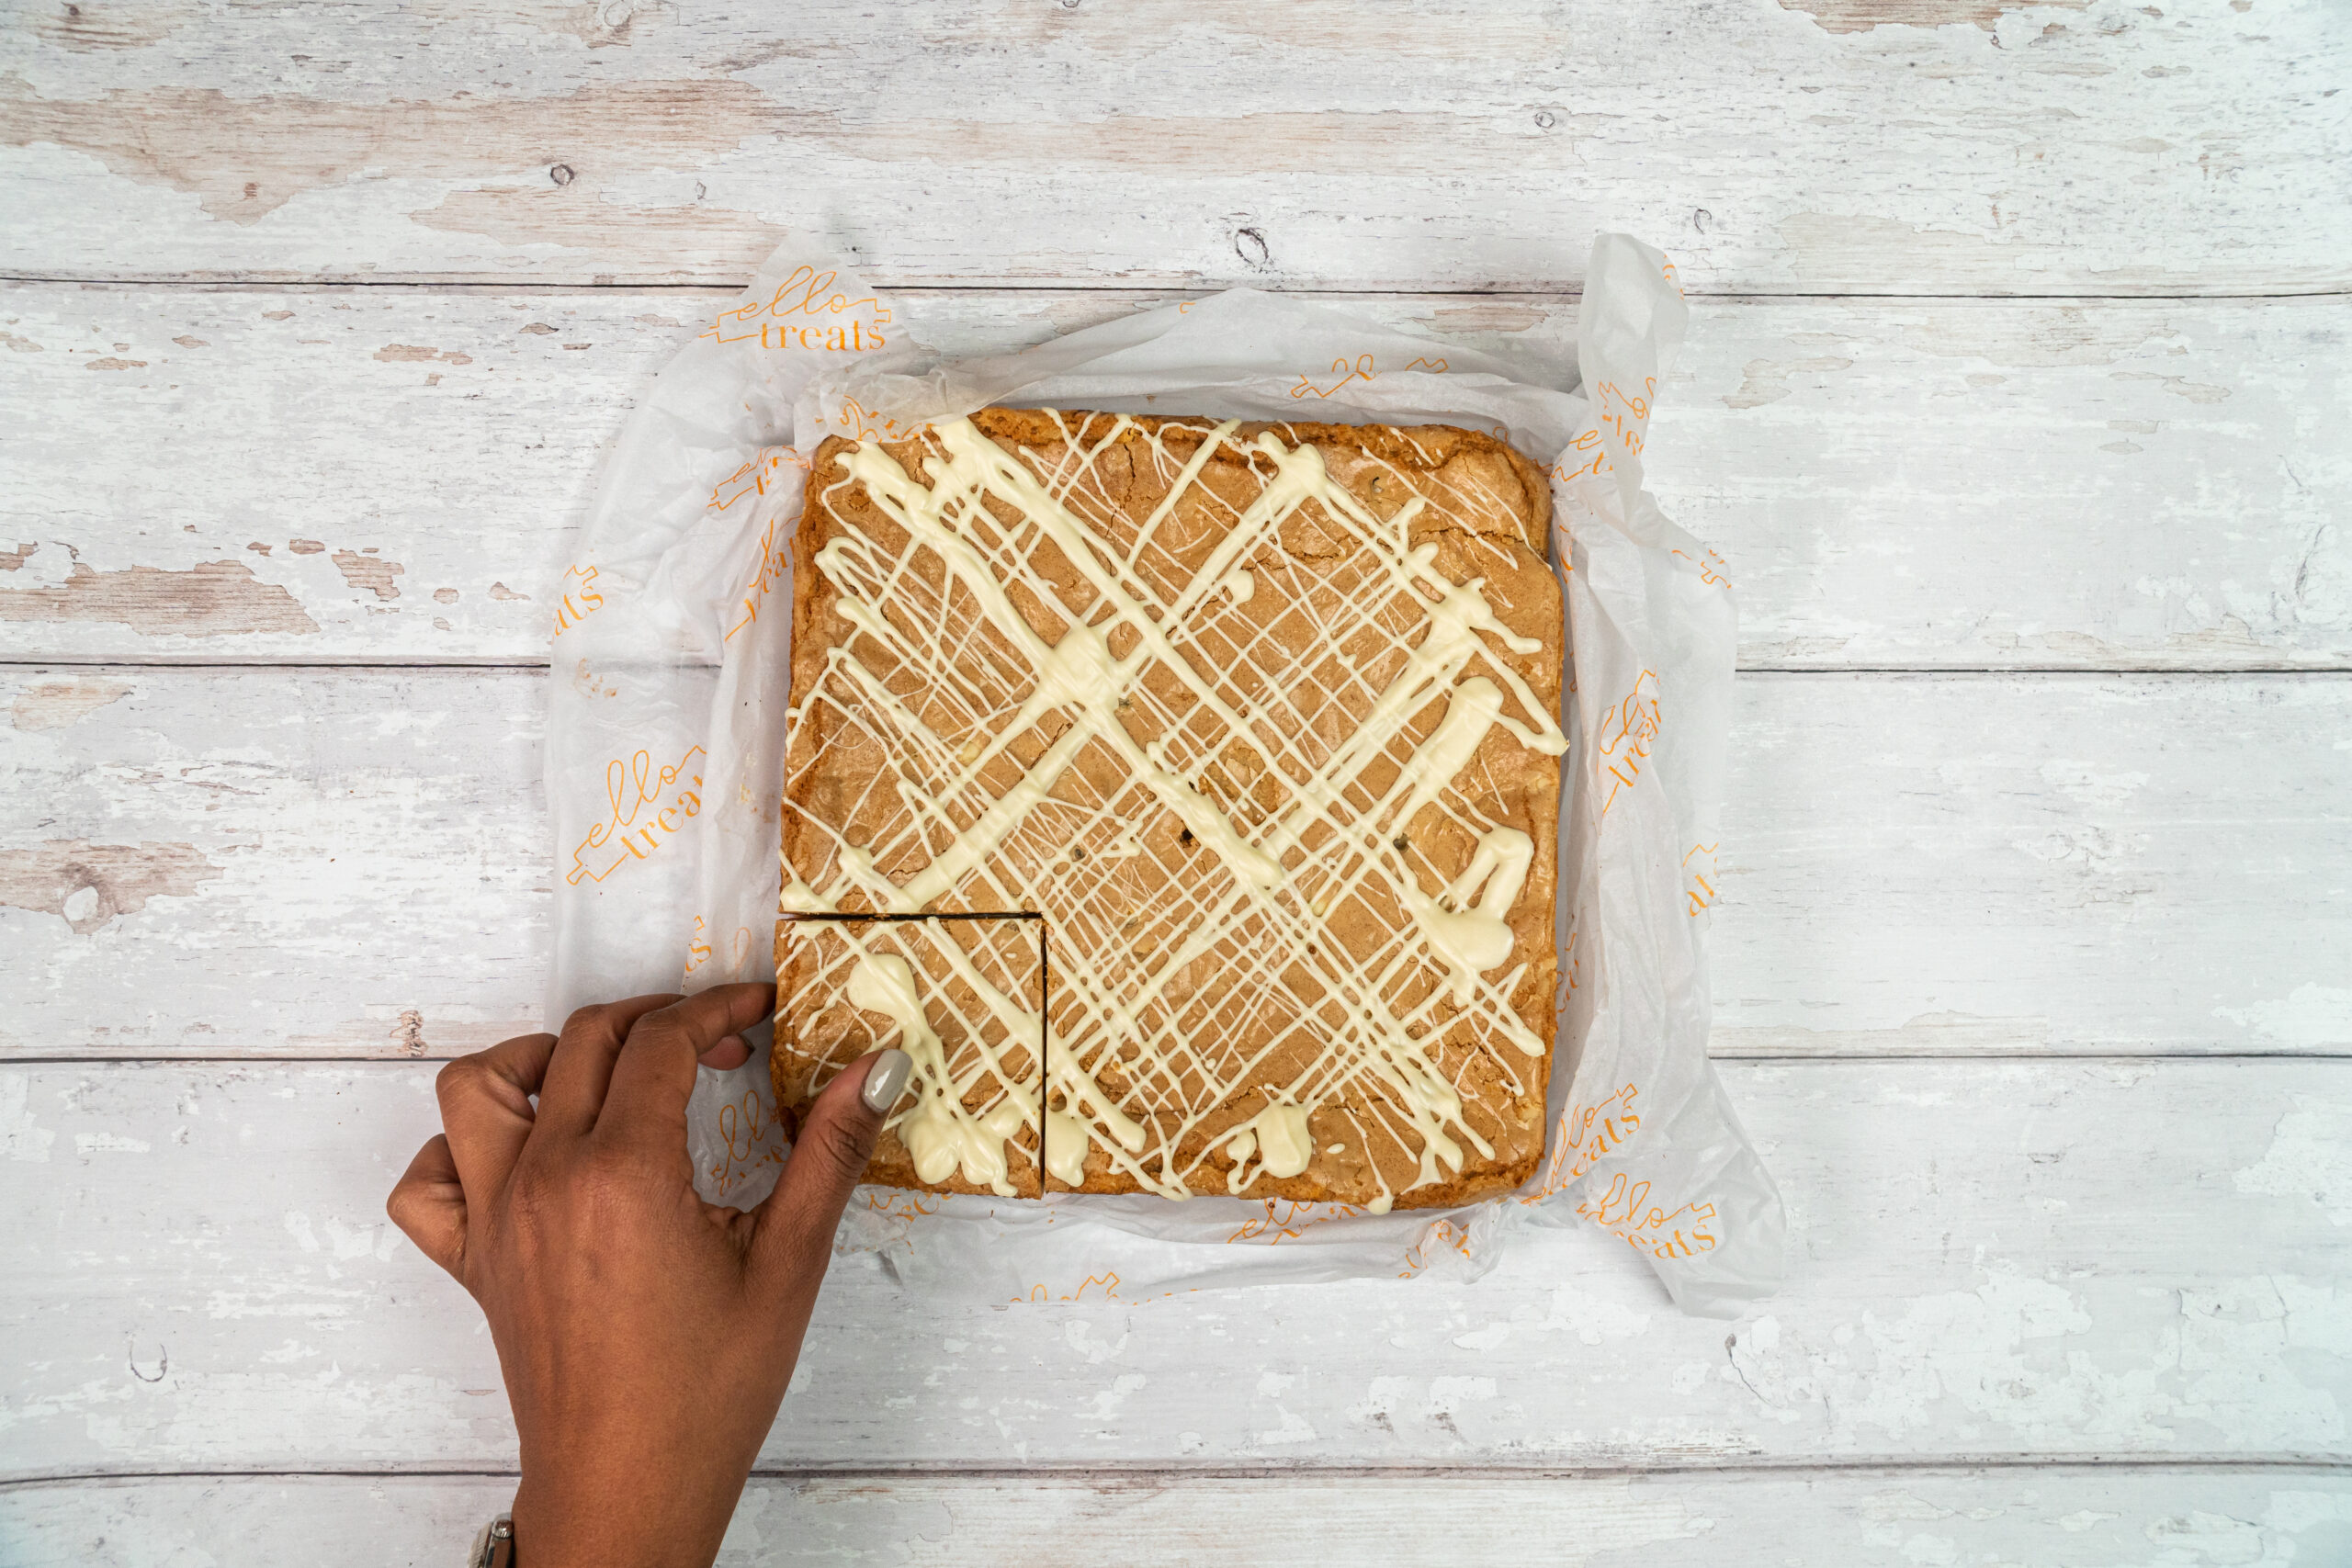 slab of white chocolate blondie, covered in a white chocolate drizzle